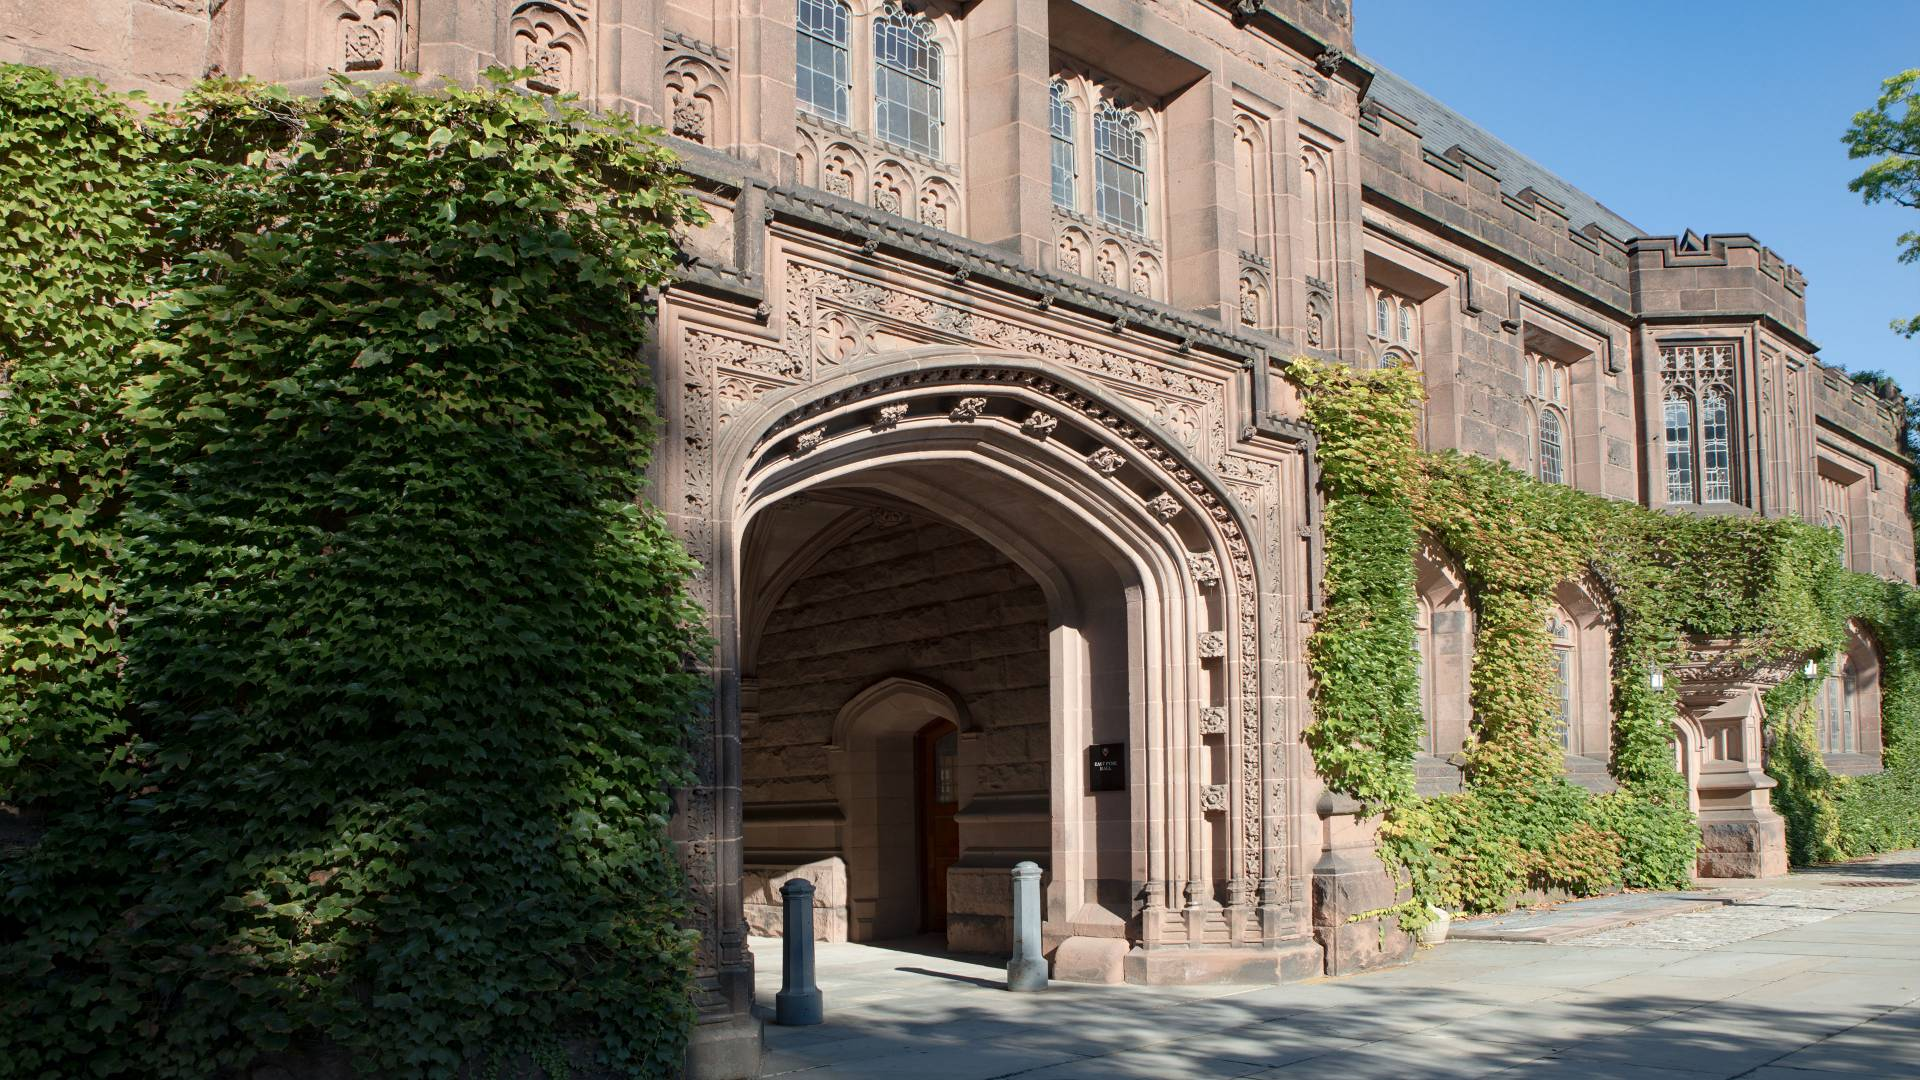 Johnson Arch facade